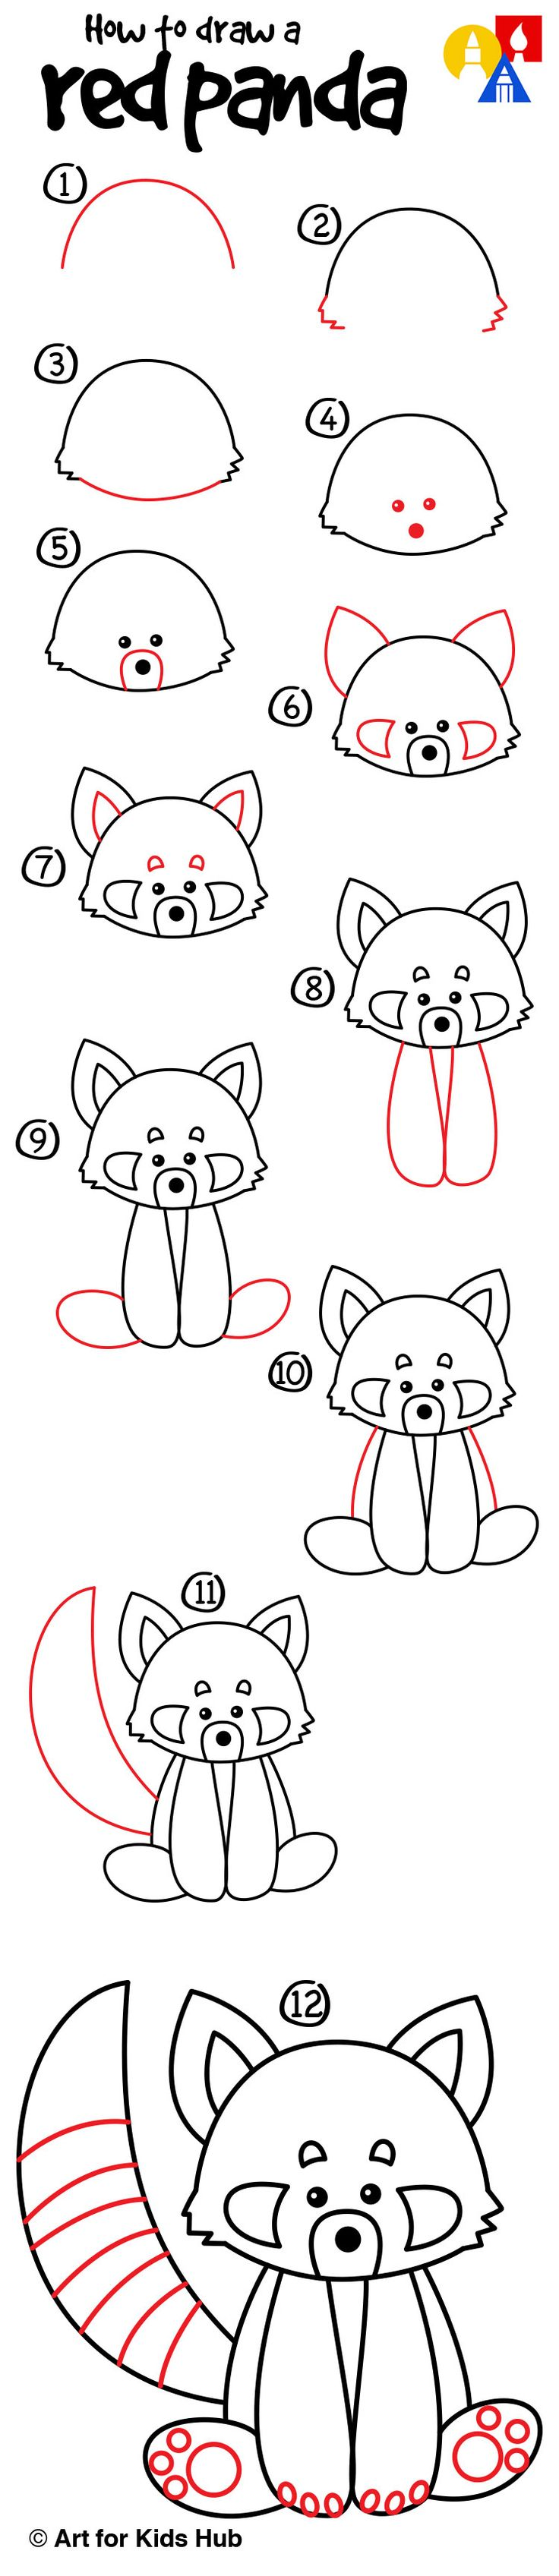 Learn how to draw a red panda!